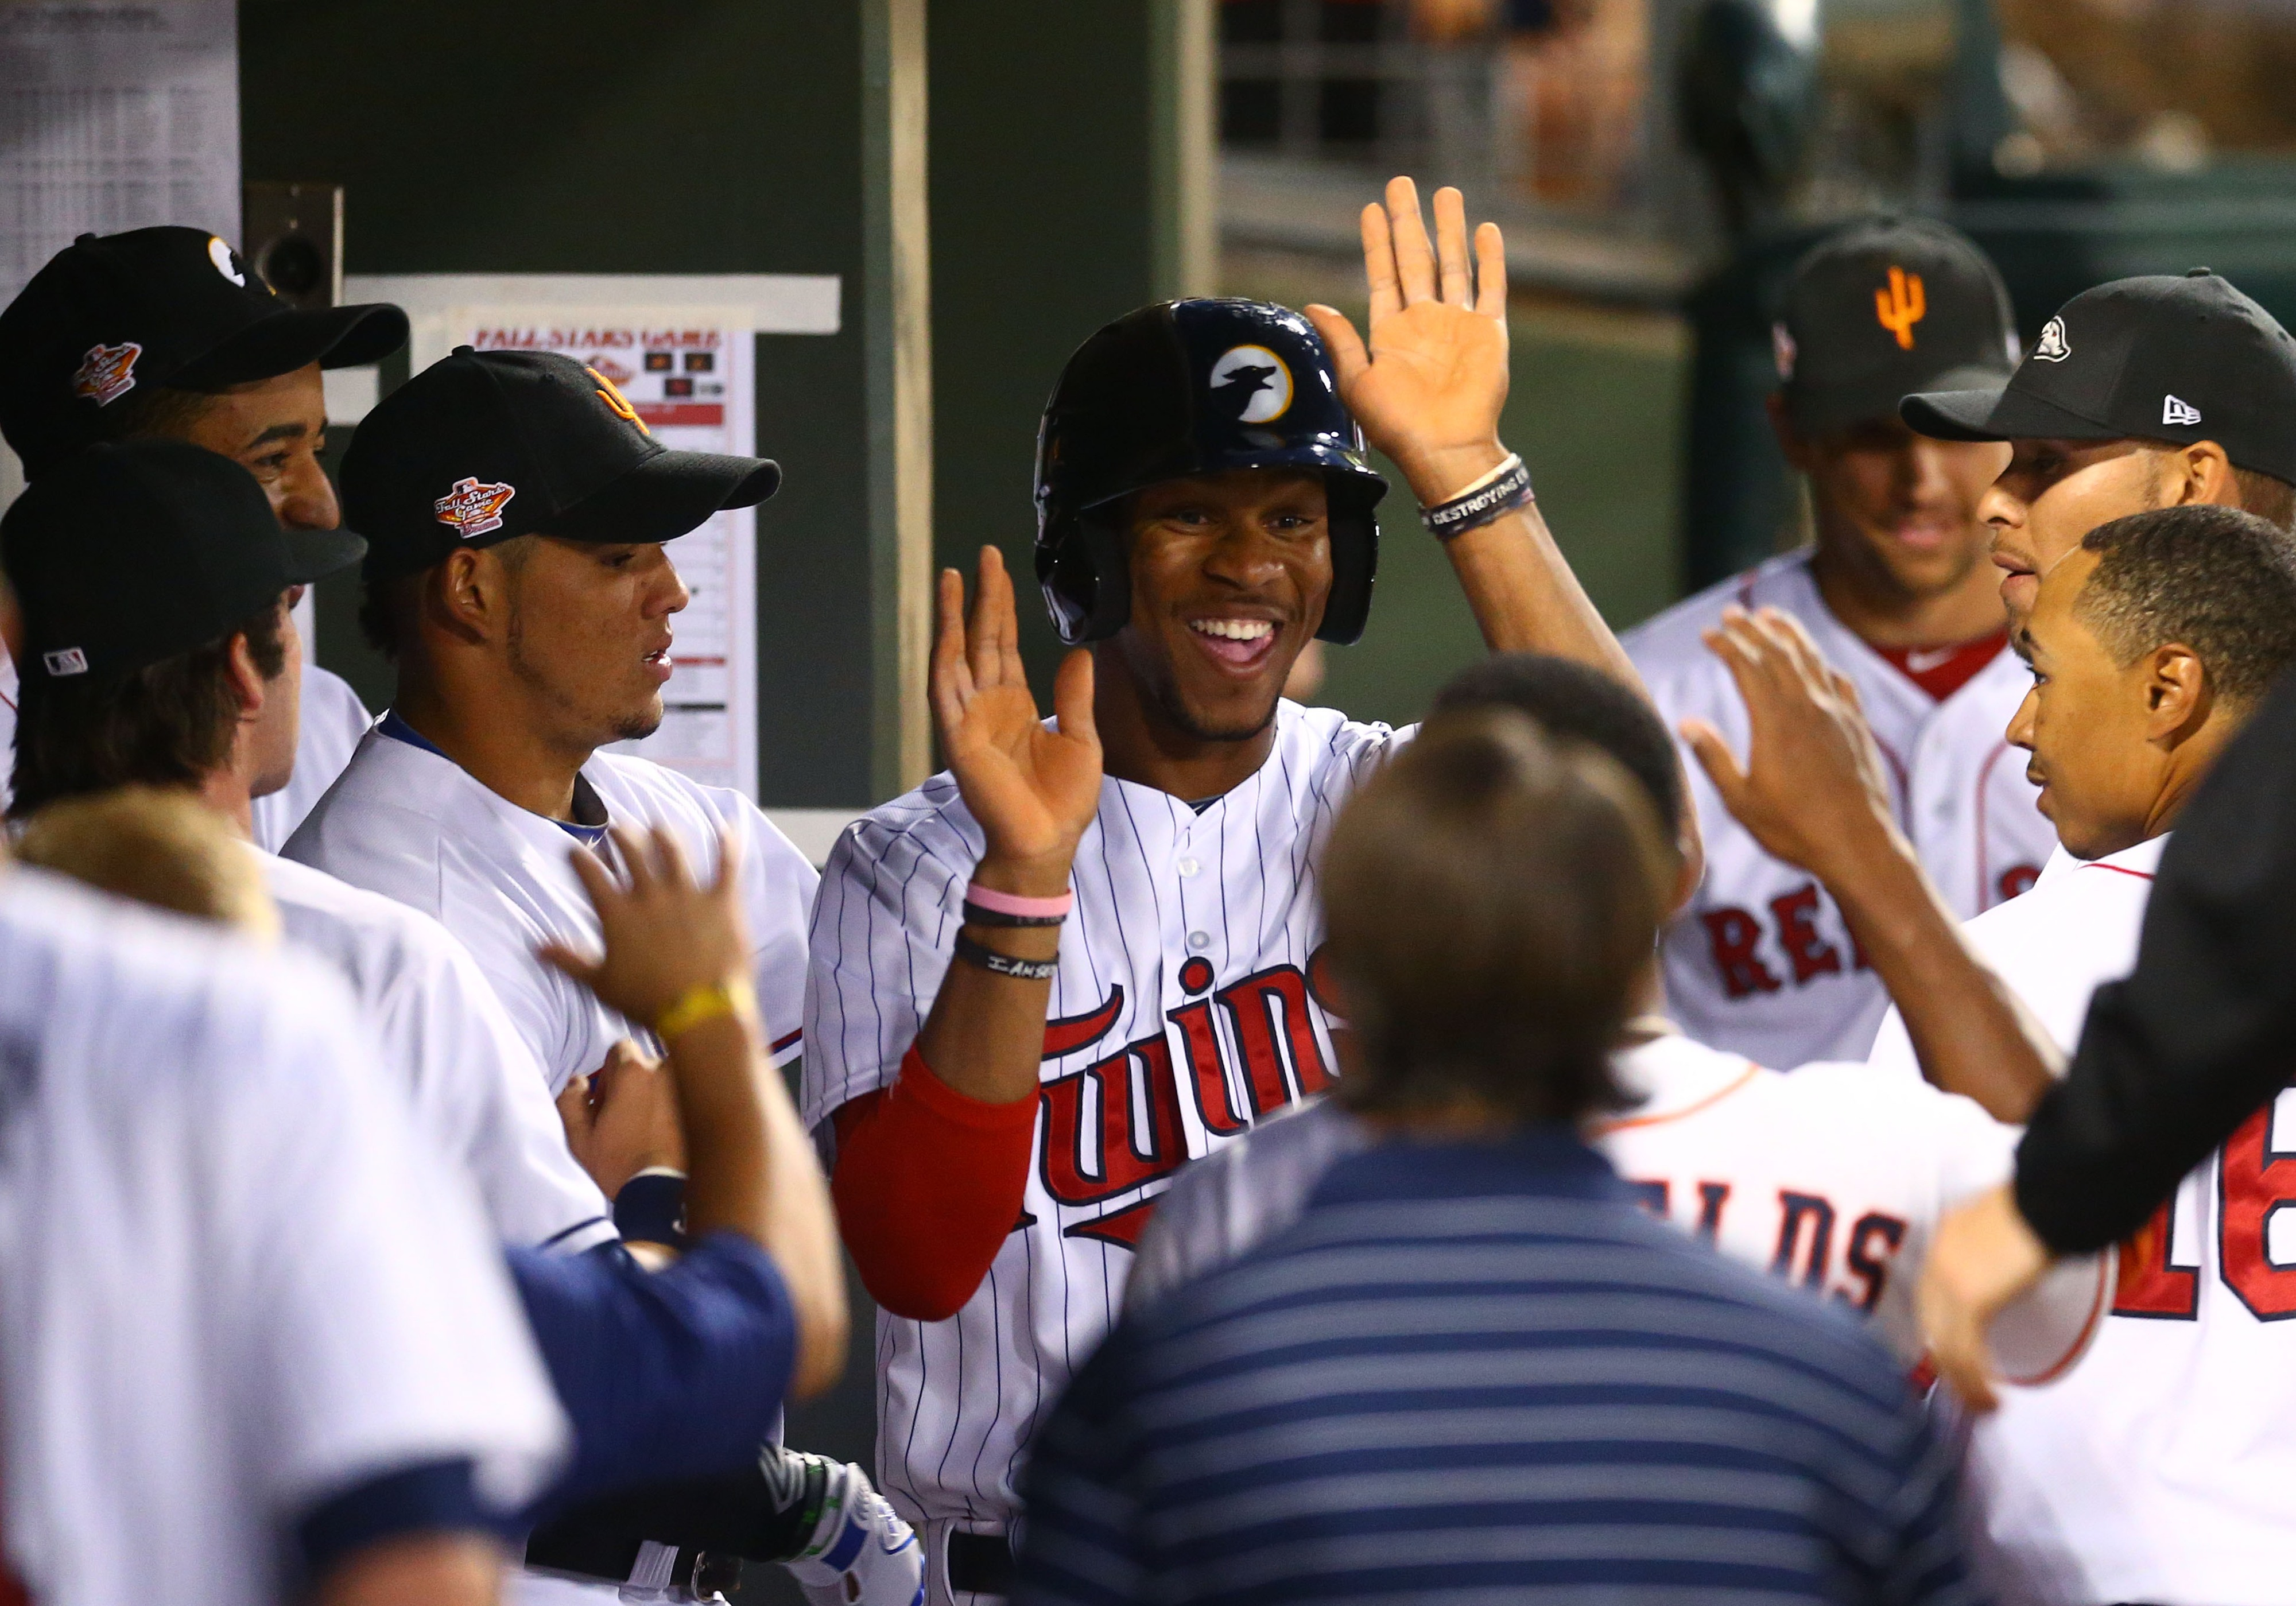 Everyone lines up to high-five Byron Buxton because he is The Best.